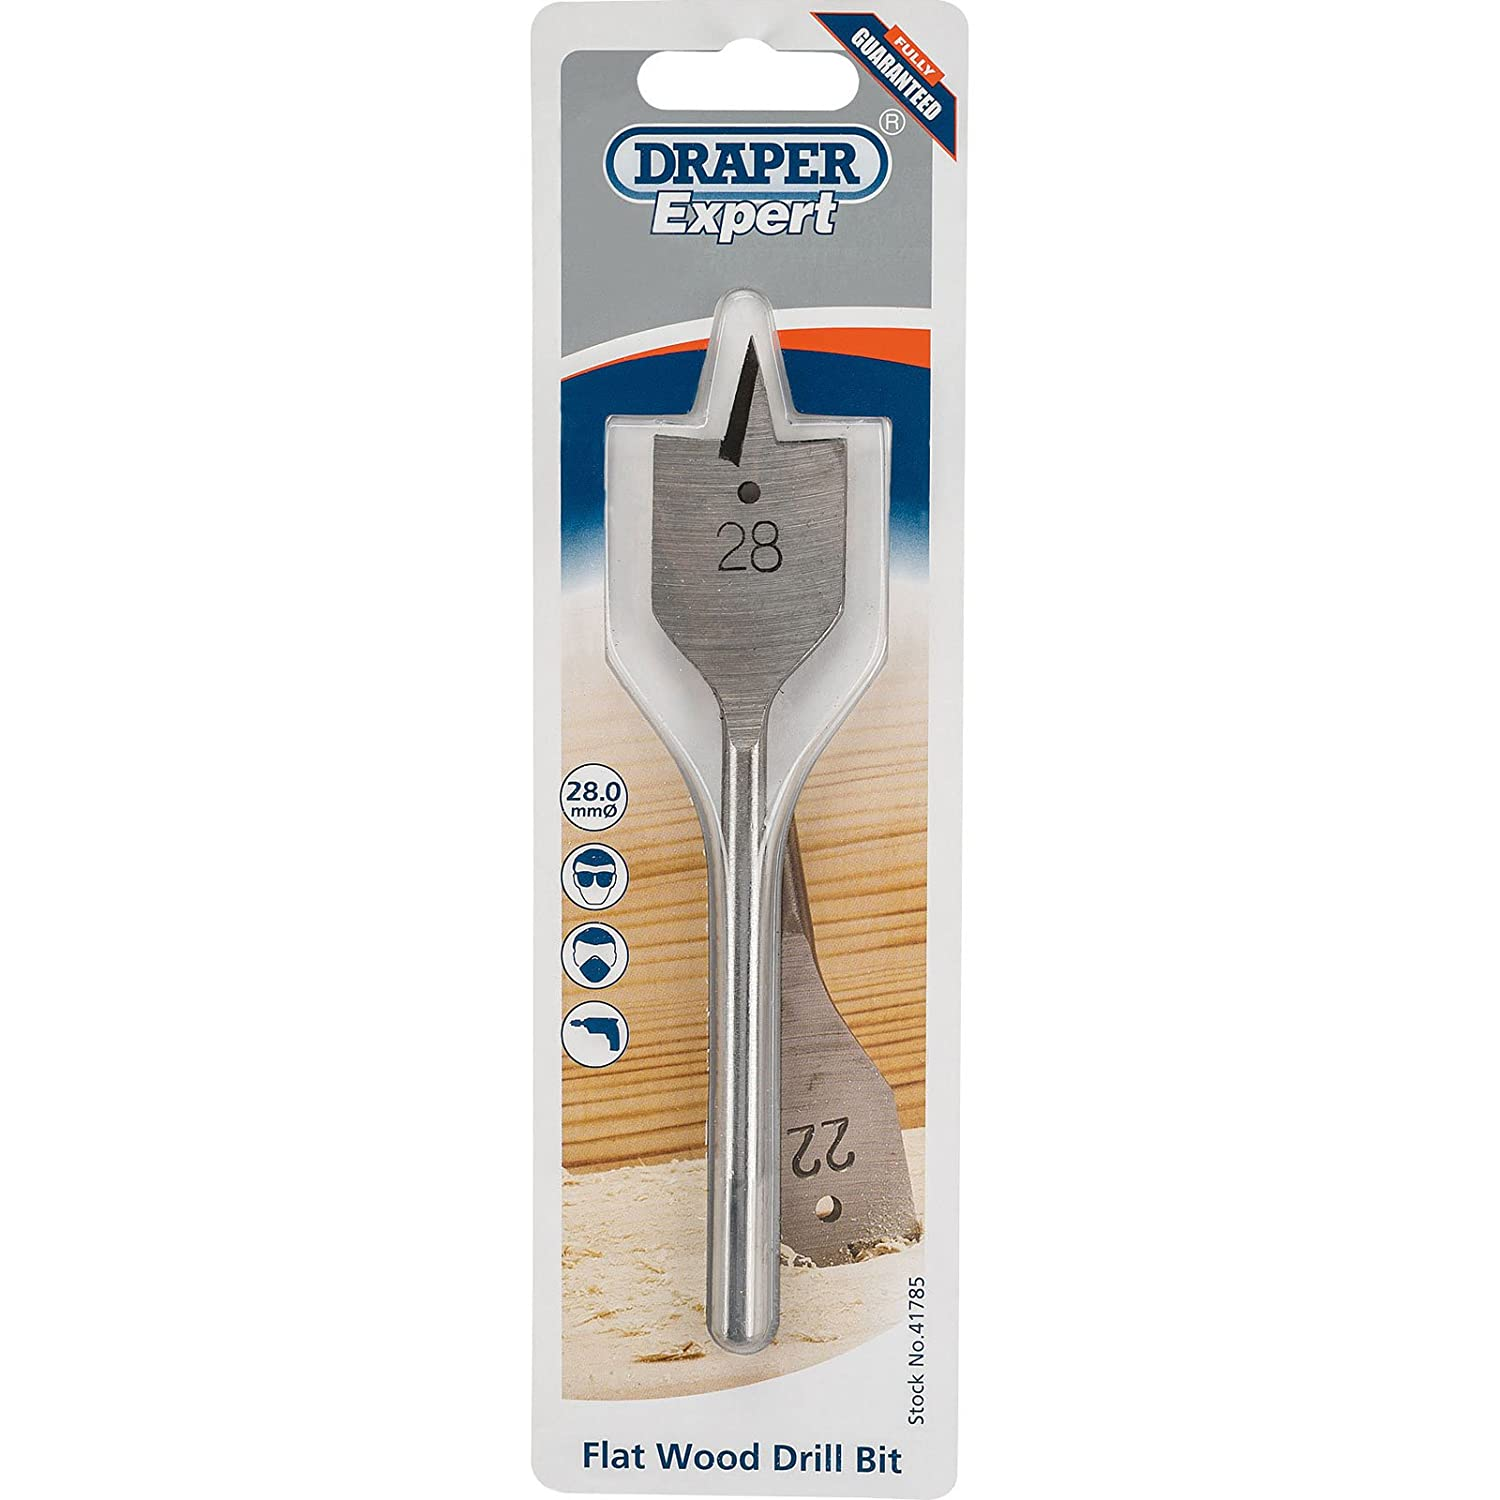 Draper 41787 Expert 32.0mm Flat Wood Bit, Blue, 32 mm